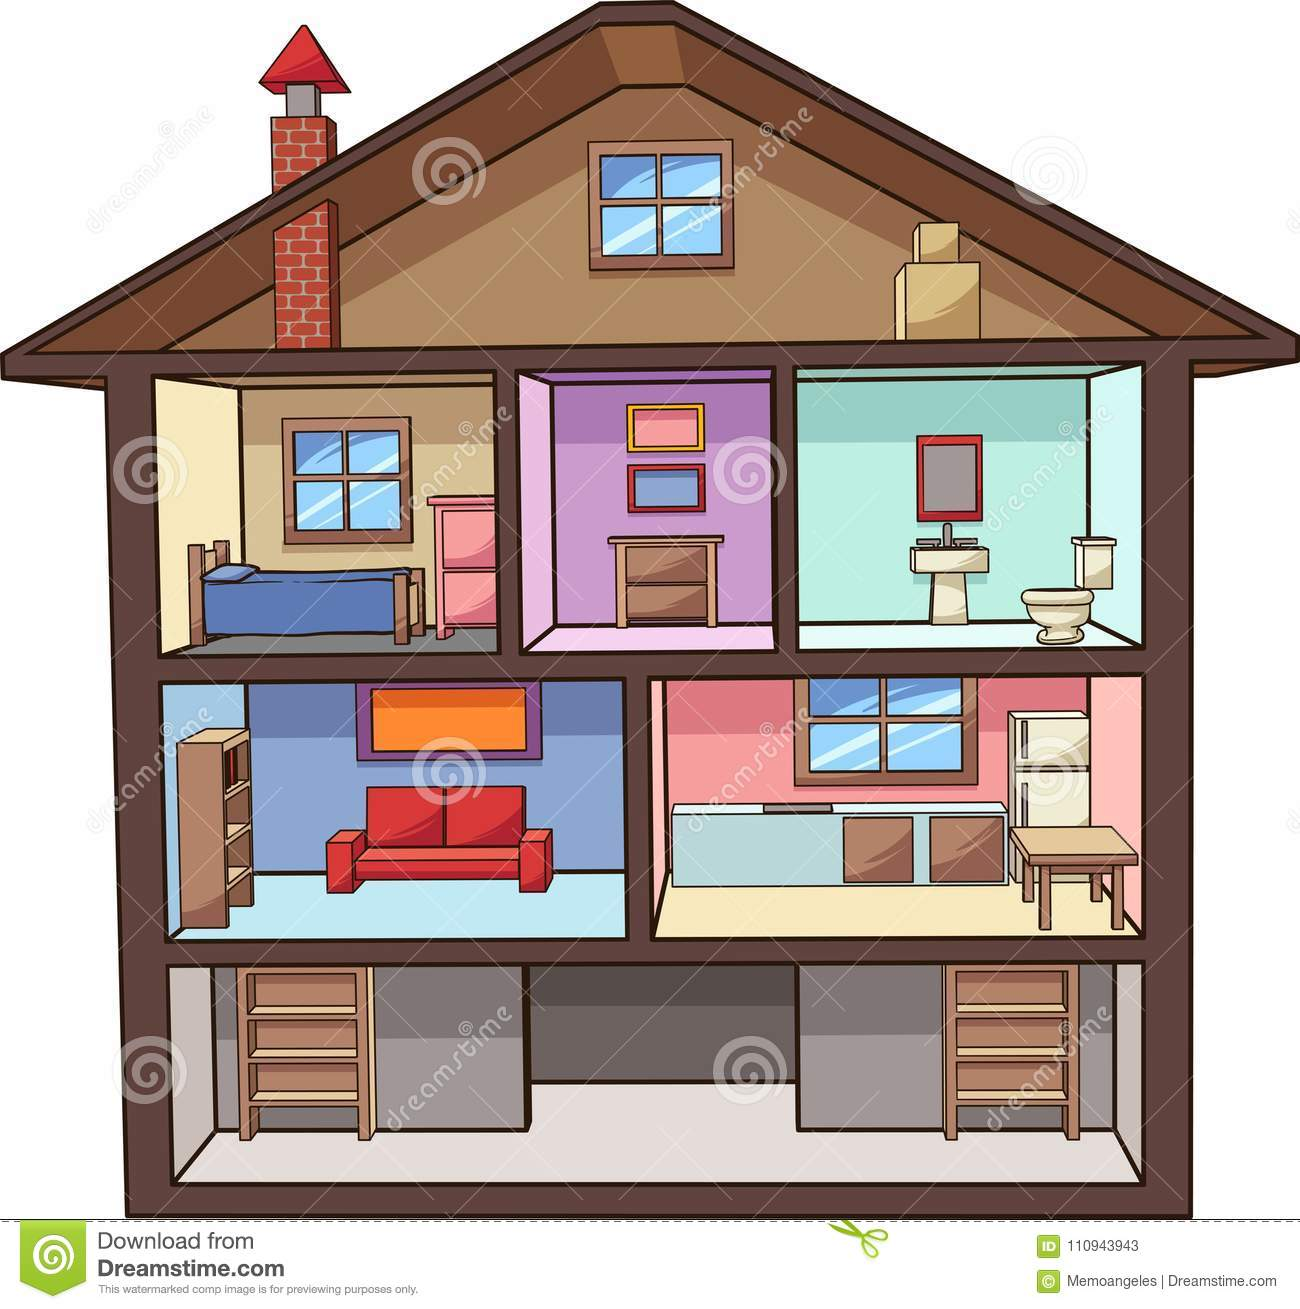 Cartoon House Interior With Rooms Stock Vector.